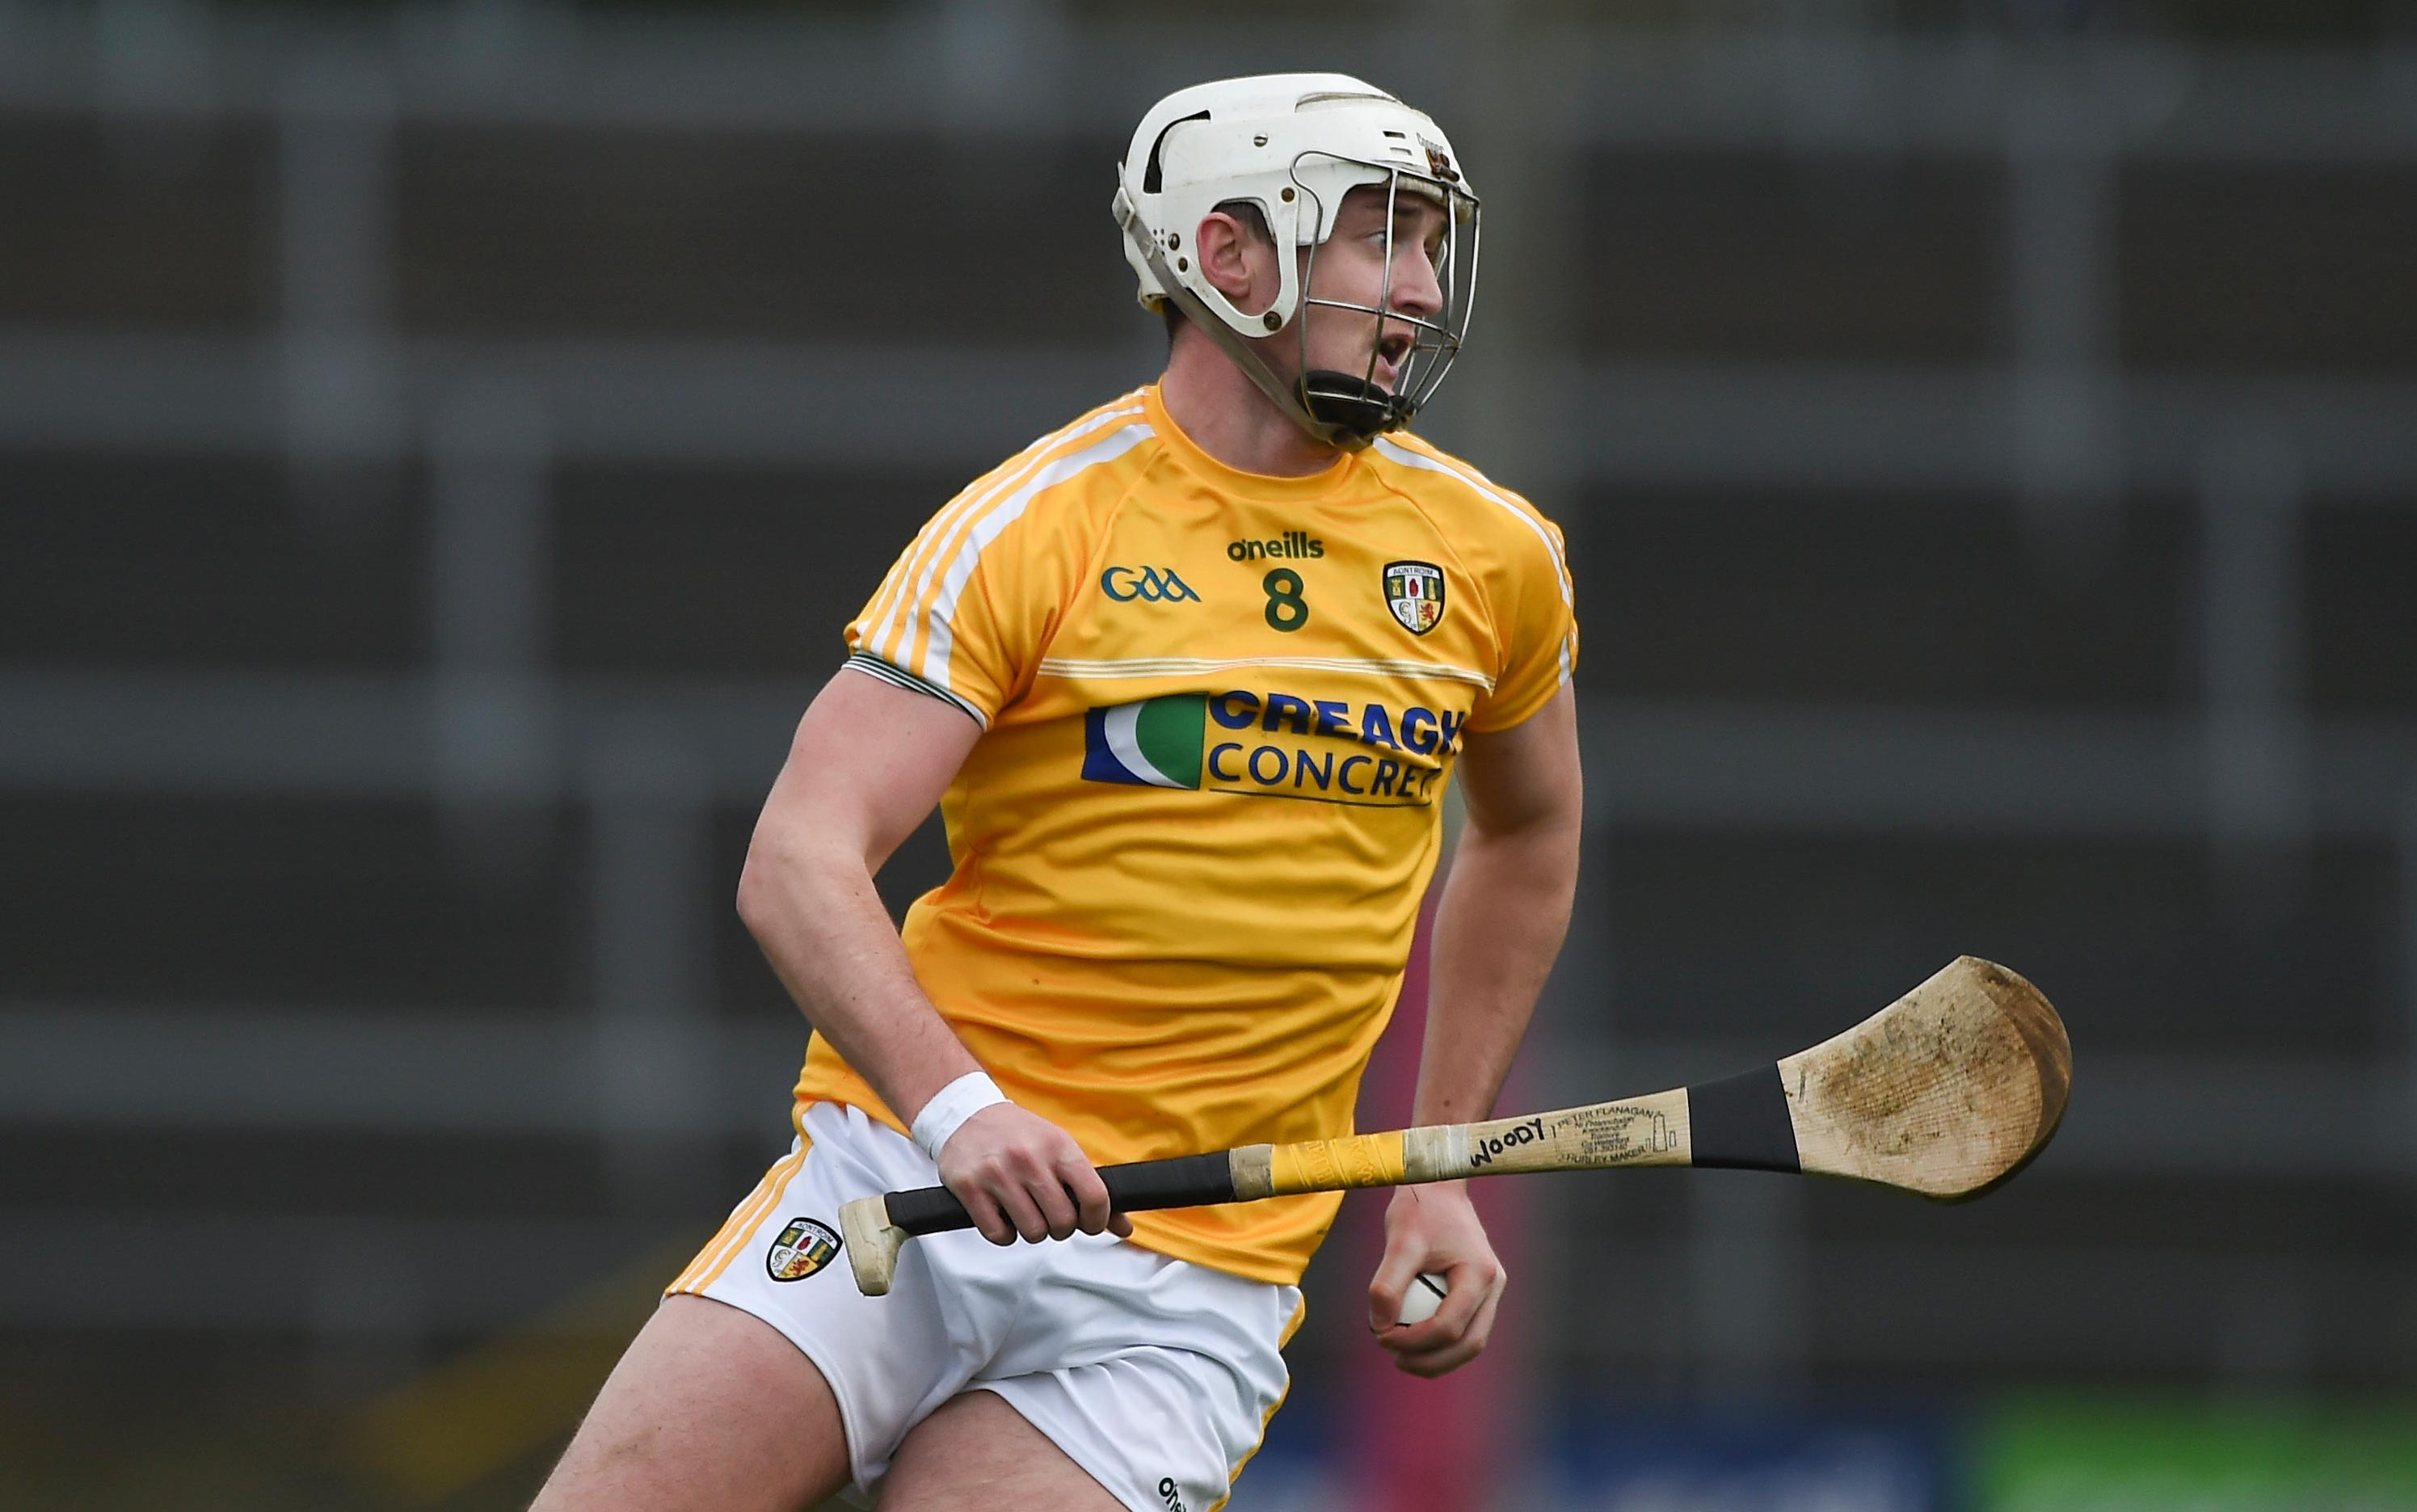 Hurling Tiers of Happiness or Frustration?